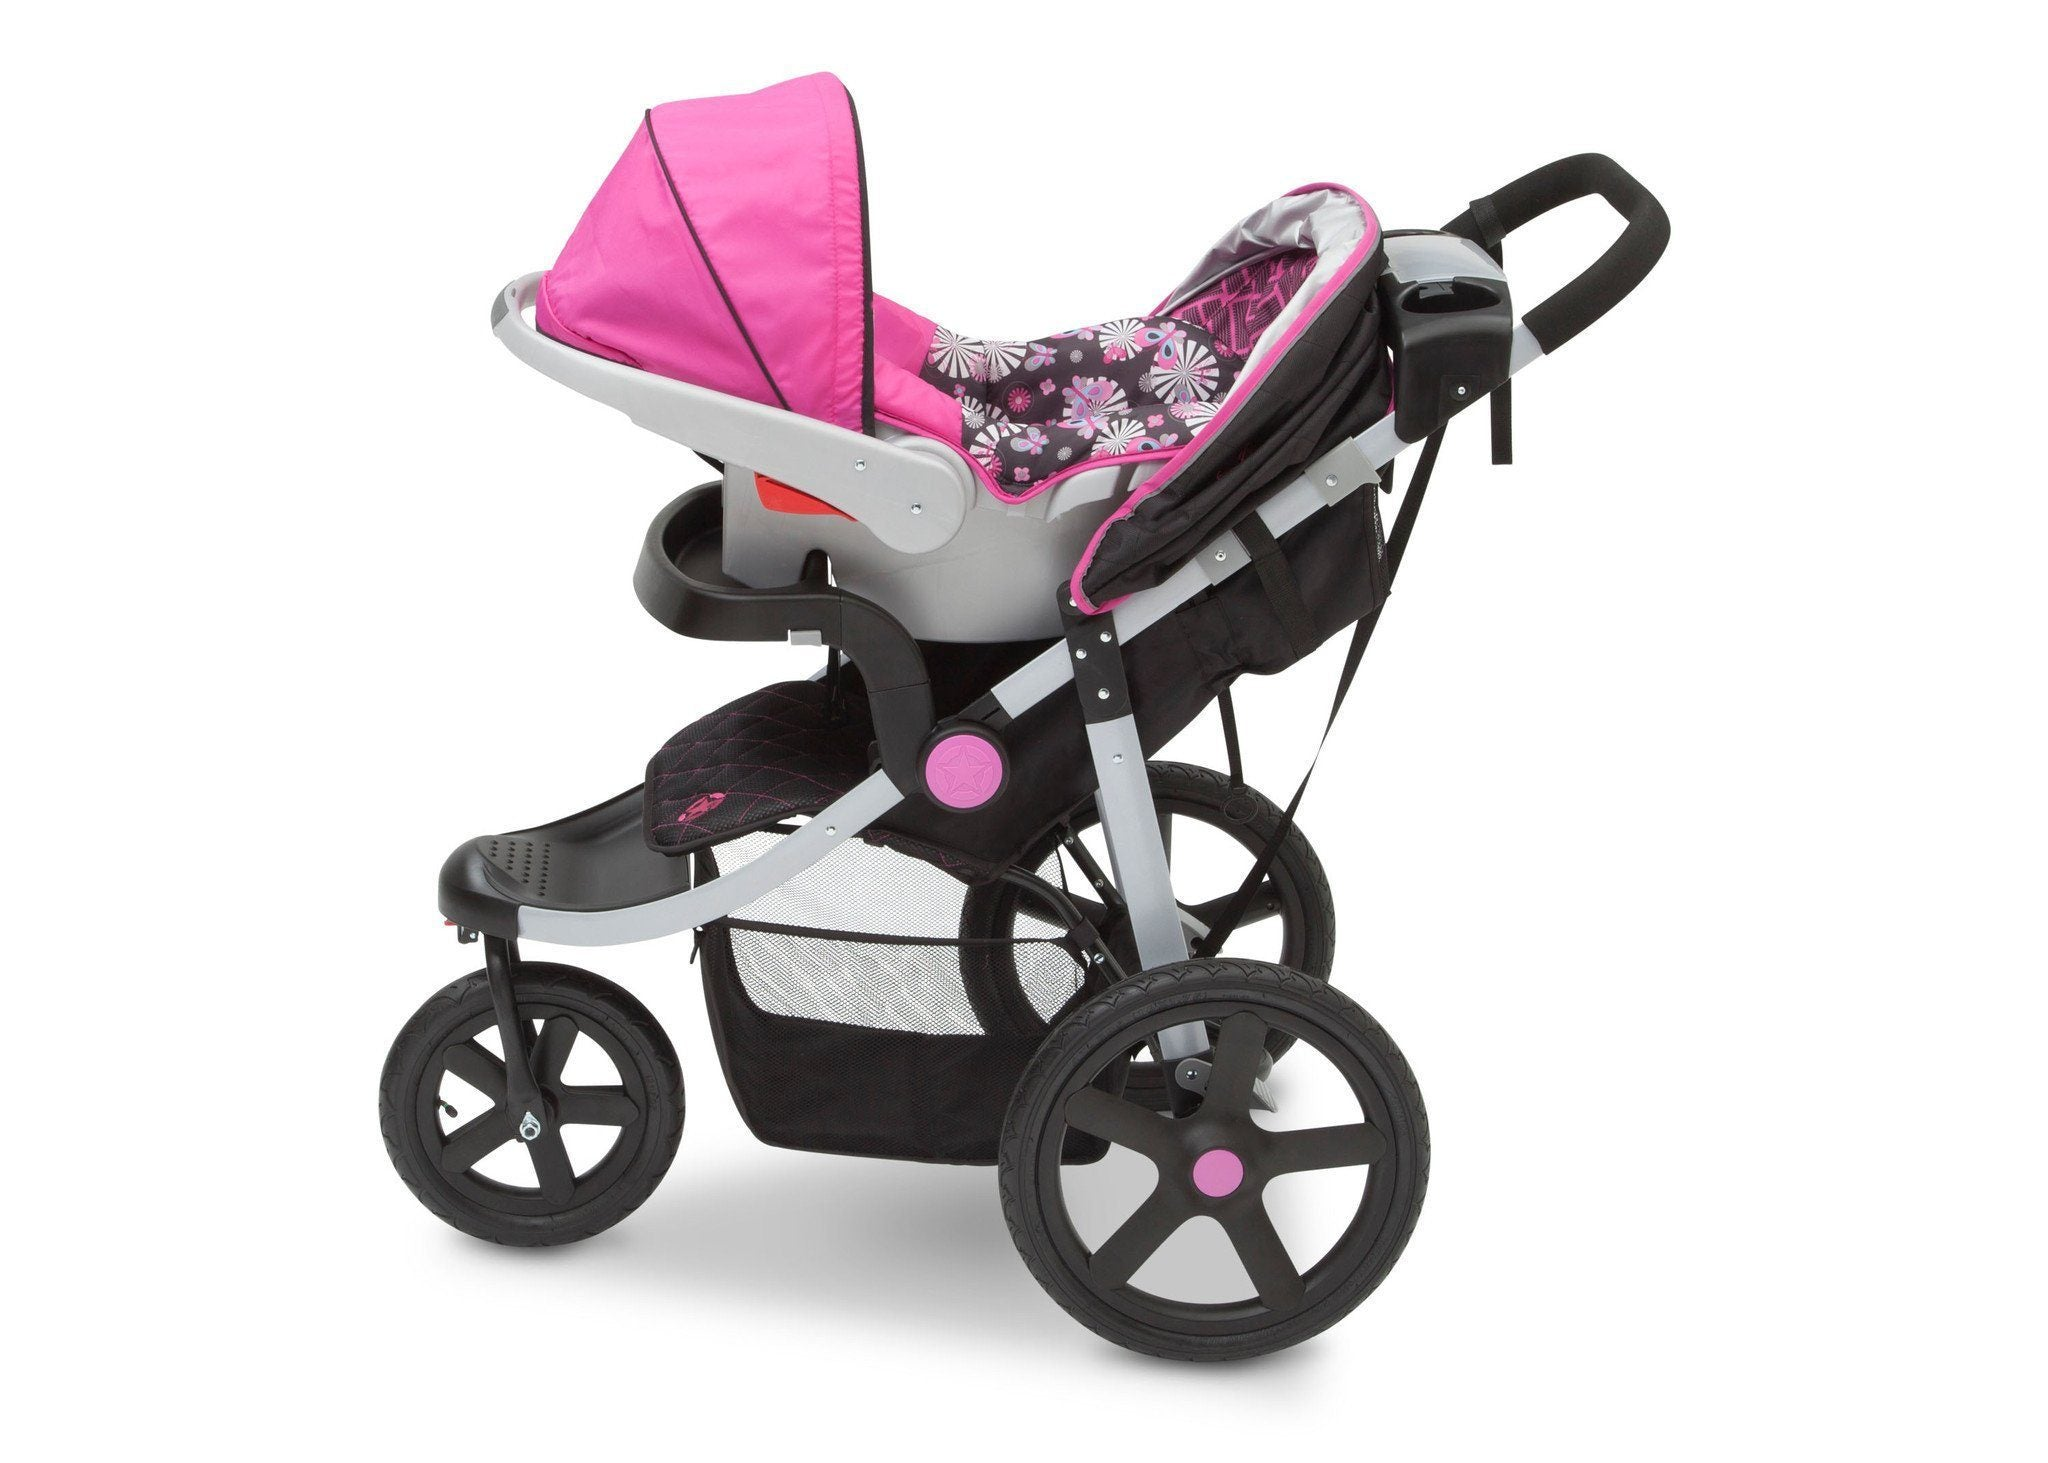 Jeep Adventure All Terrain Jogger Stroller by Delta Children, Berry Tracks (678), with generous undercarriage storage bin